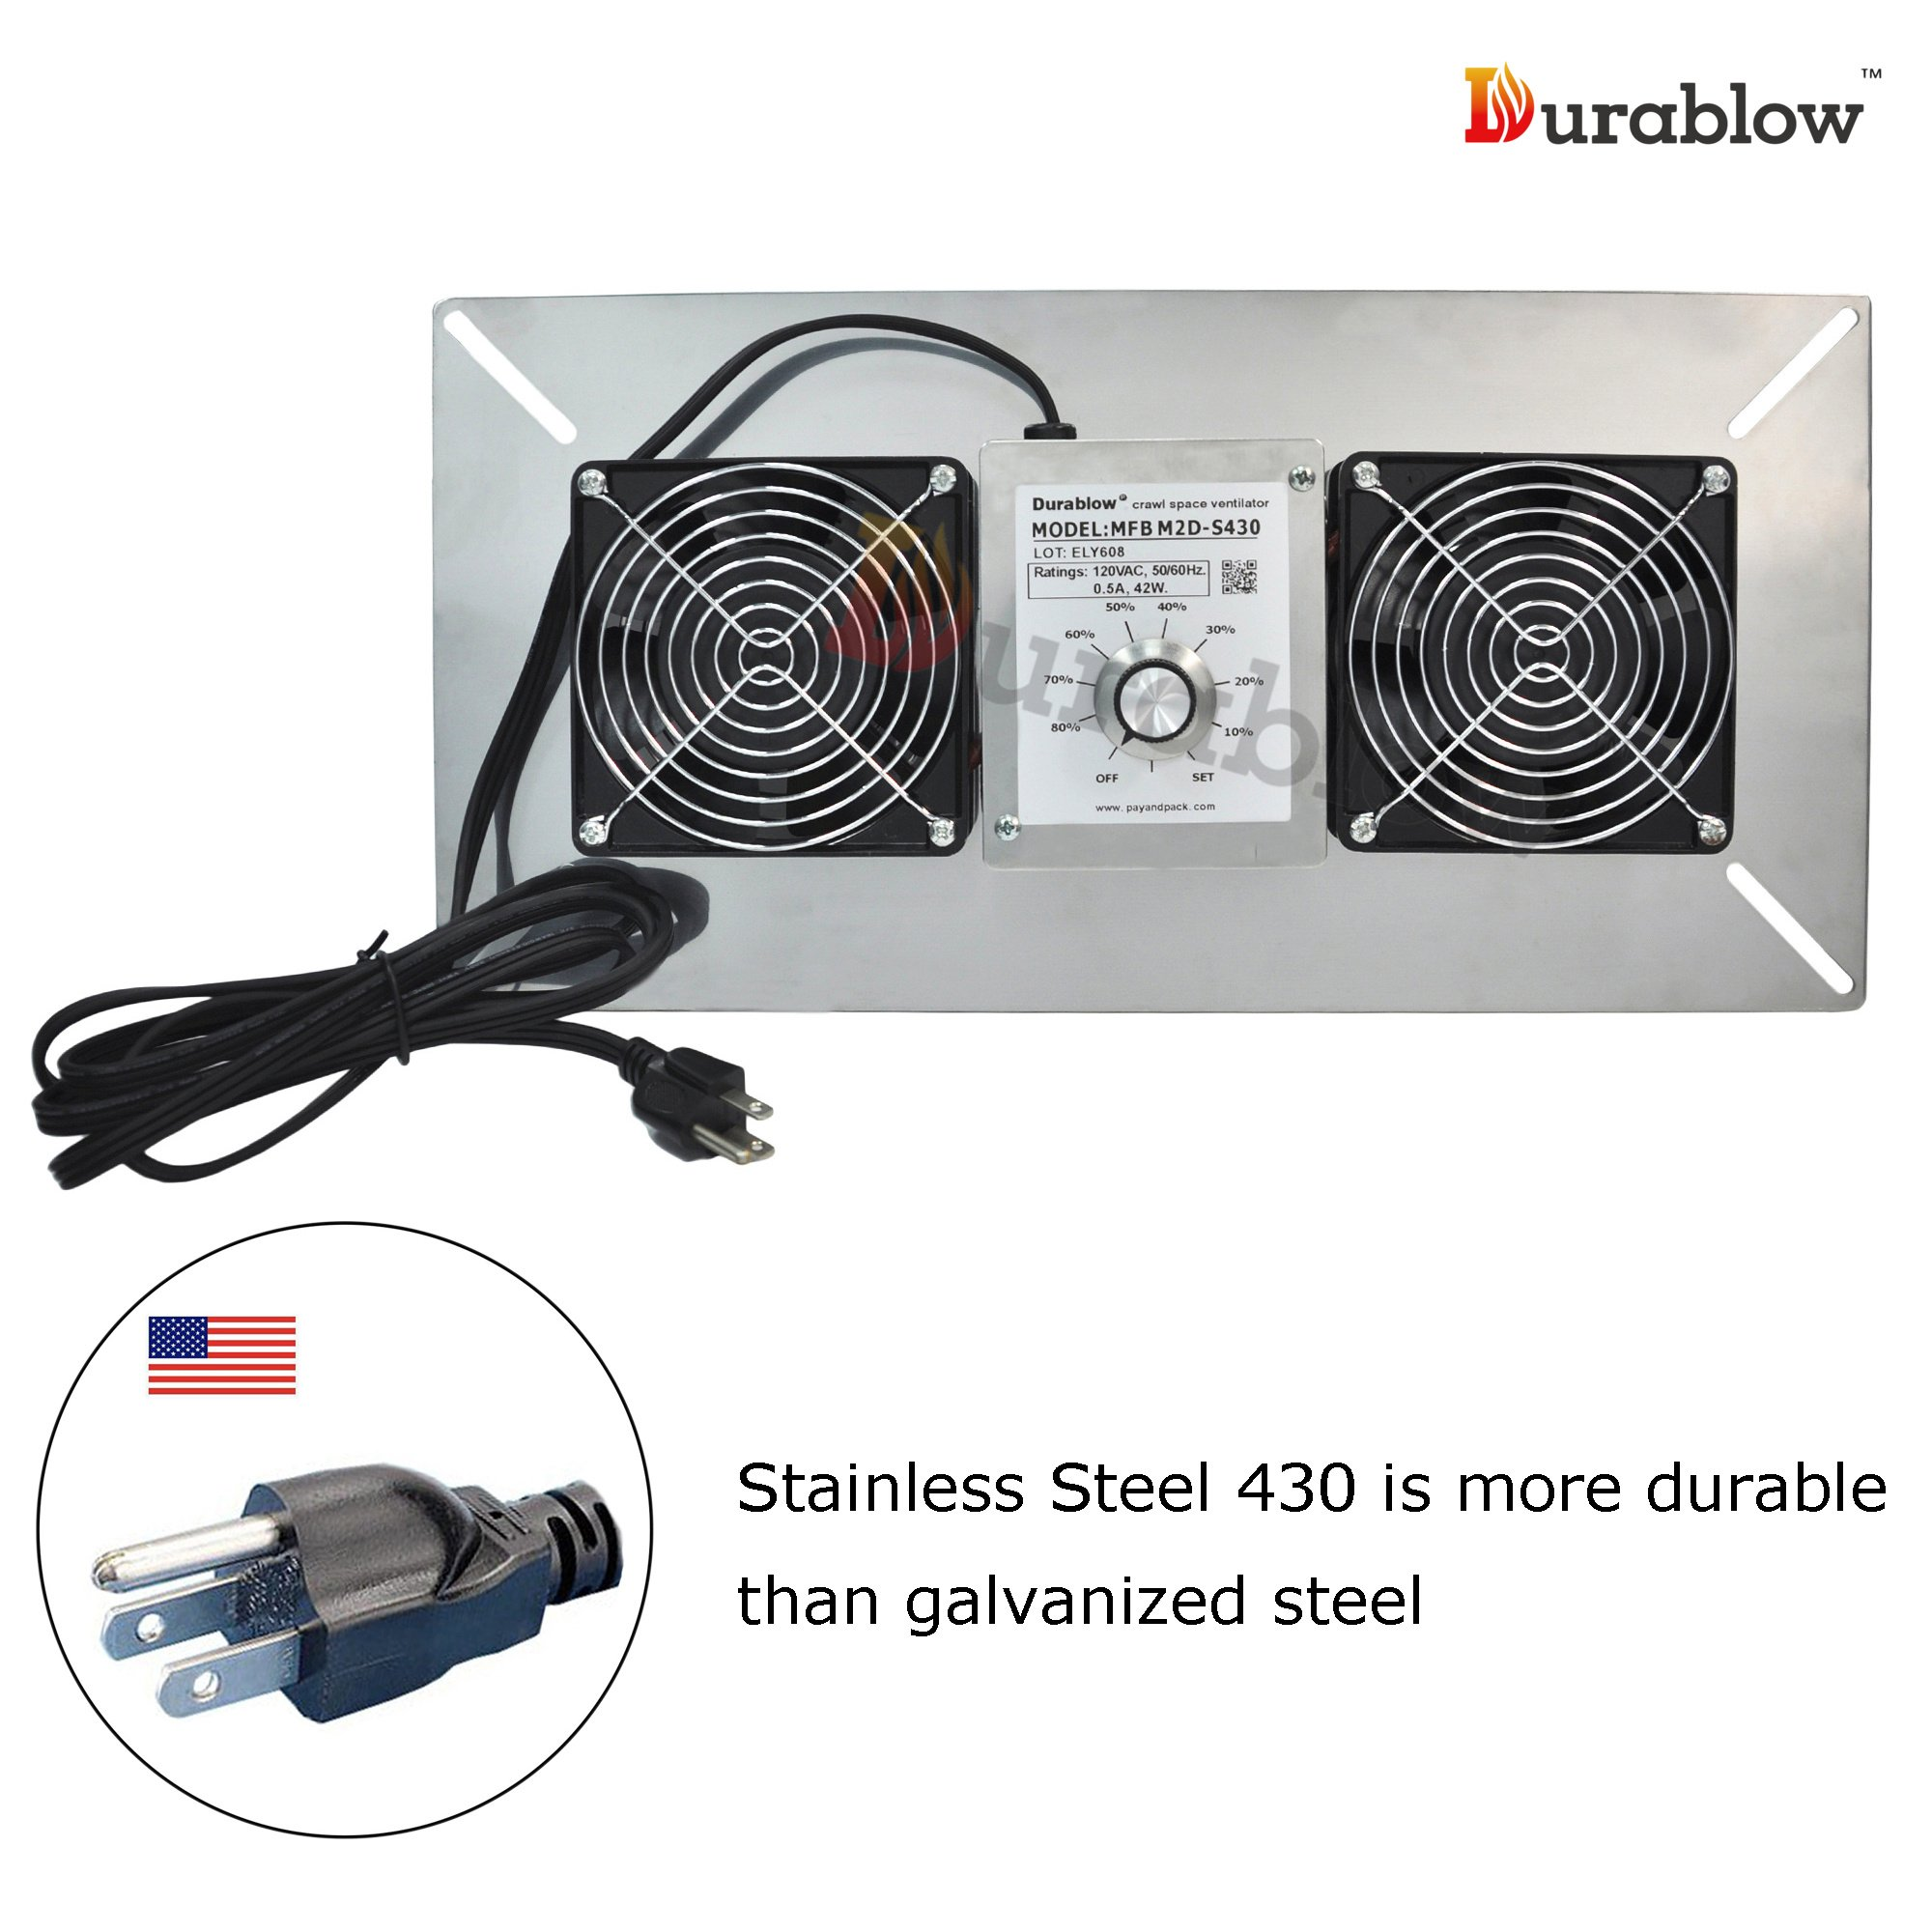 Durablow Stainless Steel 430 Crawl Space Foundation Dual Fans Ventilator + Built-in Dehumidistat, 220 CFM (Model: MFB M2D-S430) by Durablow (Image #1)